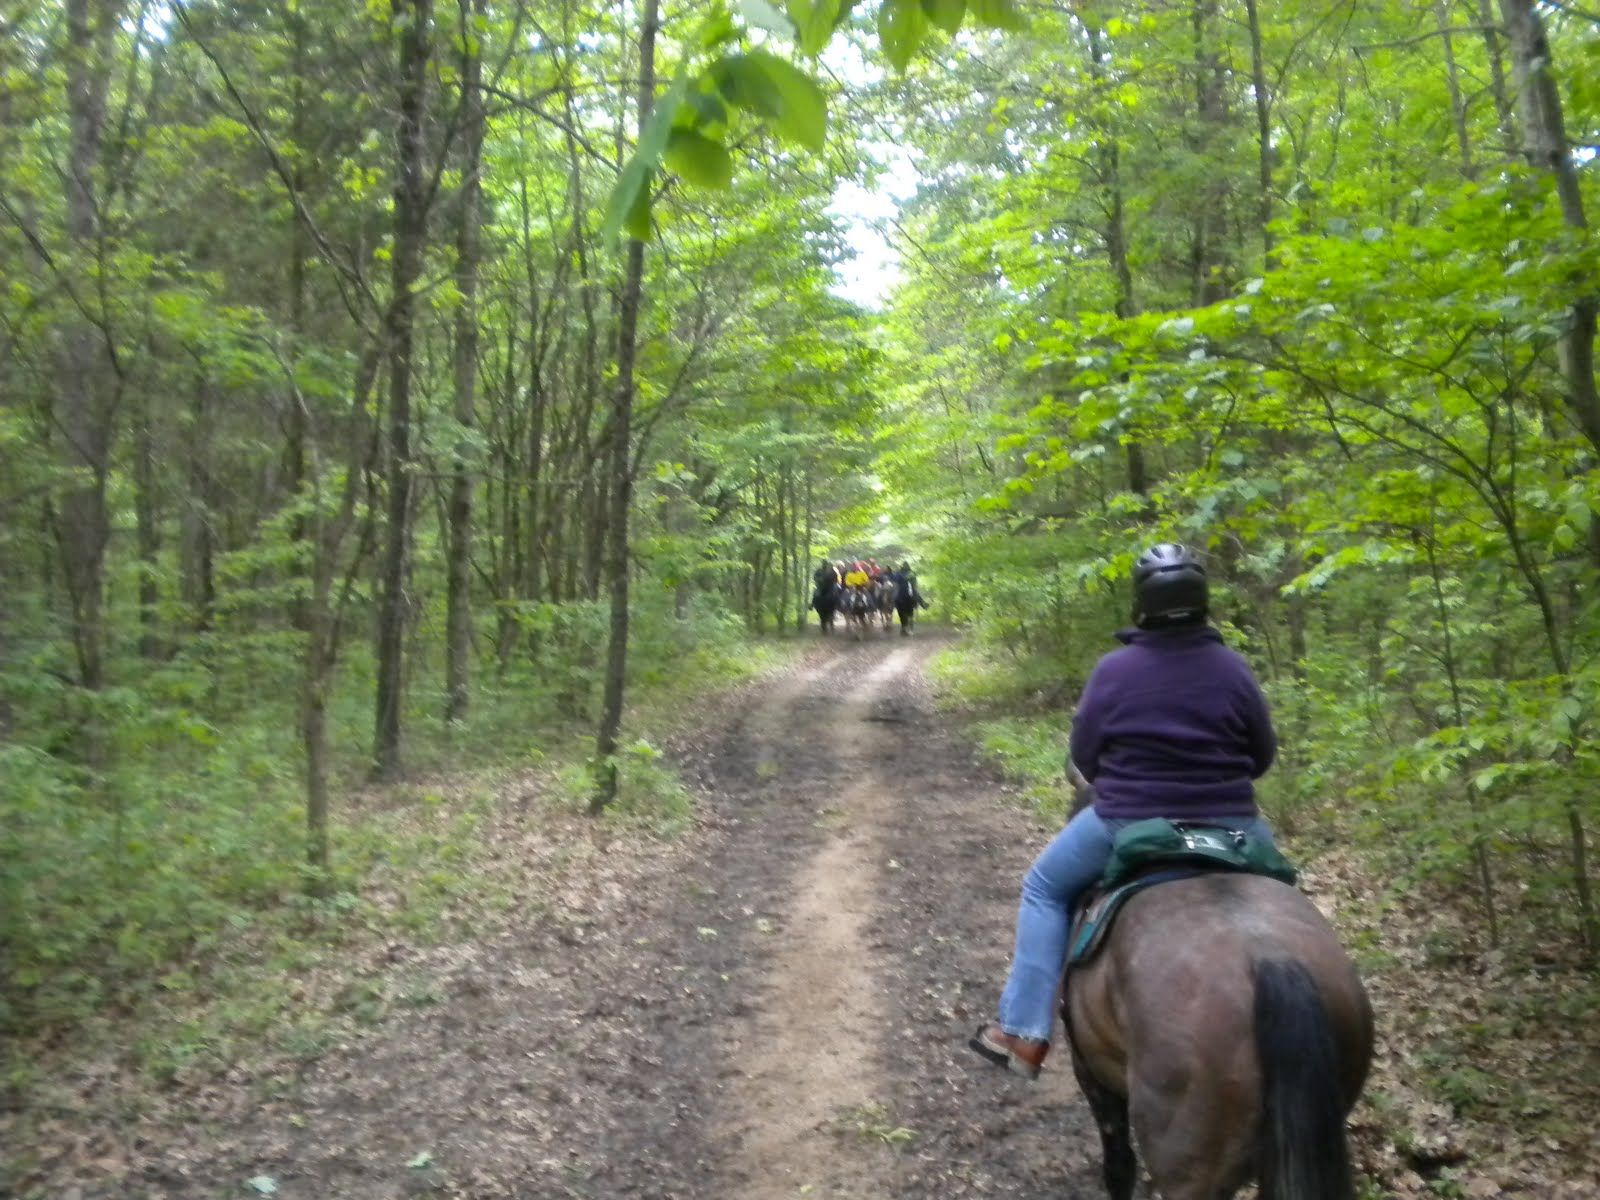 Brown County State Park - Nashville, Indiana is on the featured destination list for THE AMAZING CAMP-LAND RACE